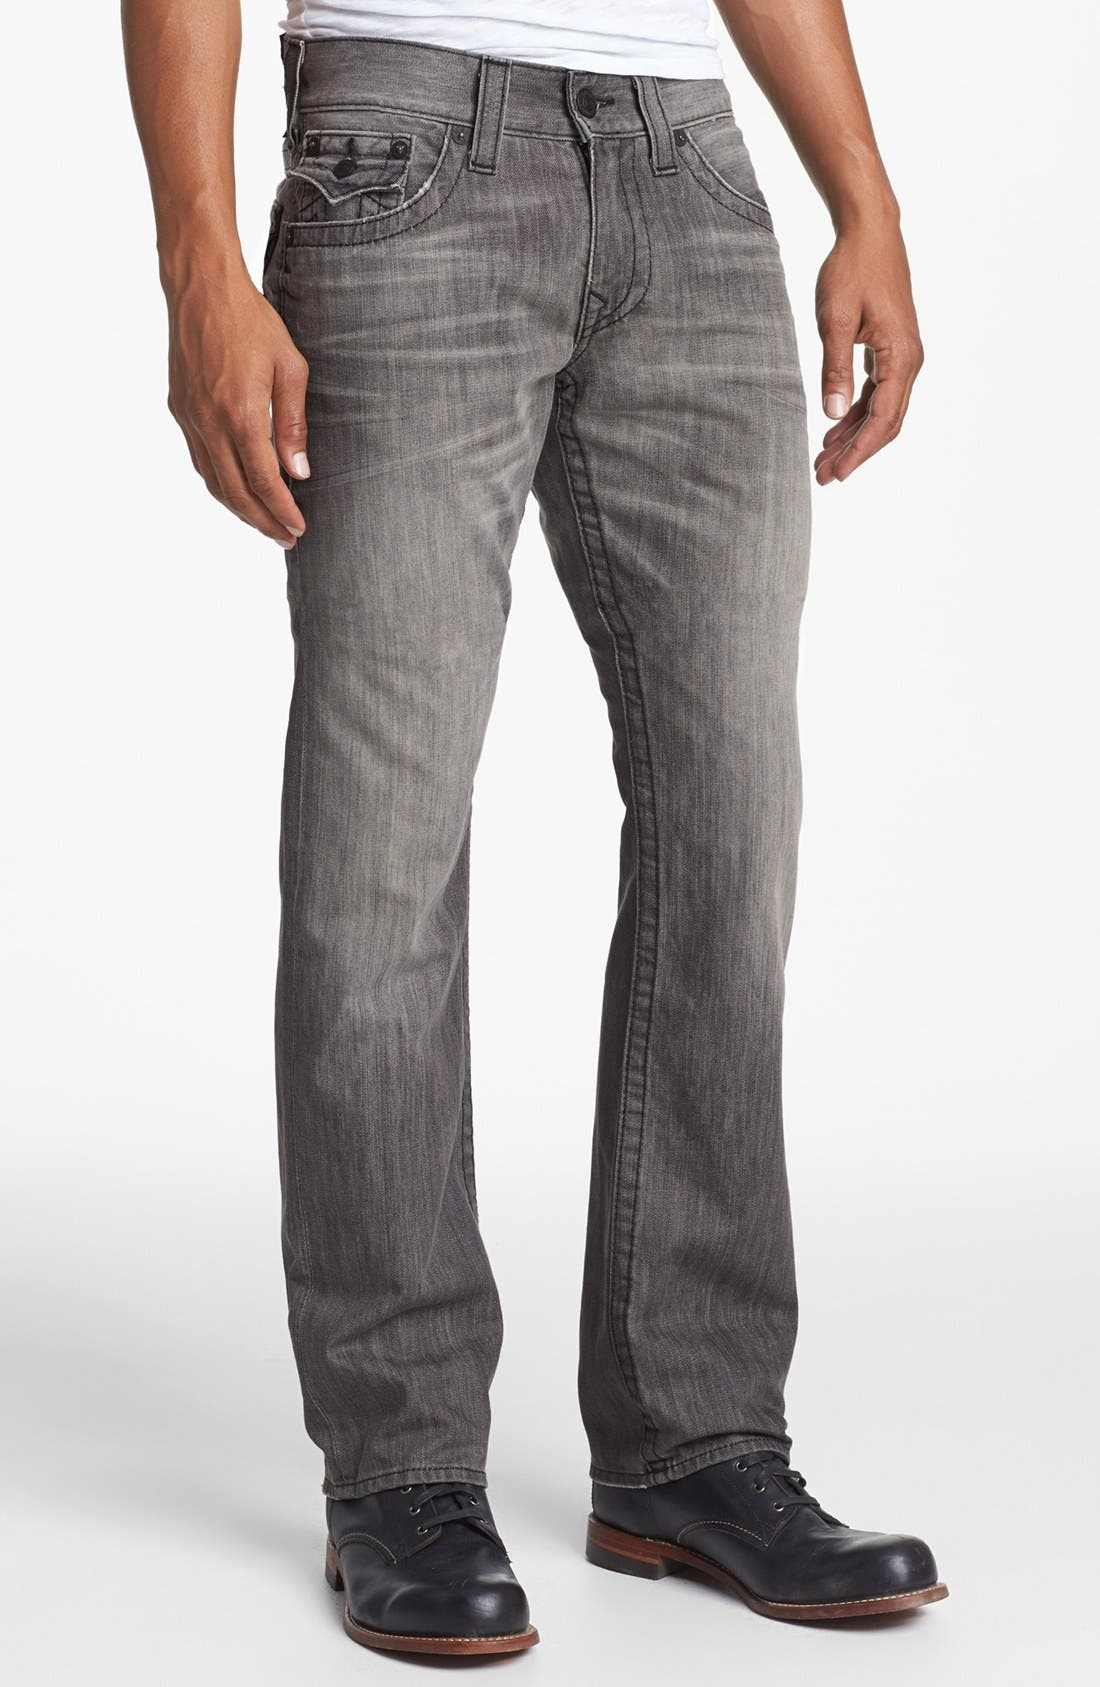 'Ricky' Relaxed Fit Jeans,                             Alternate thumbnail 9, color,